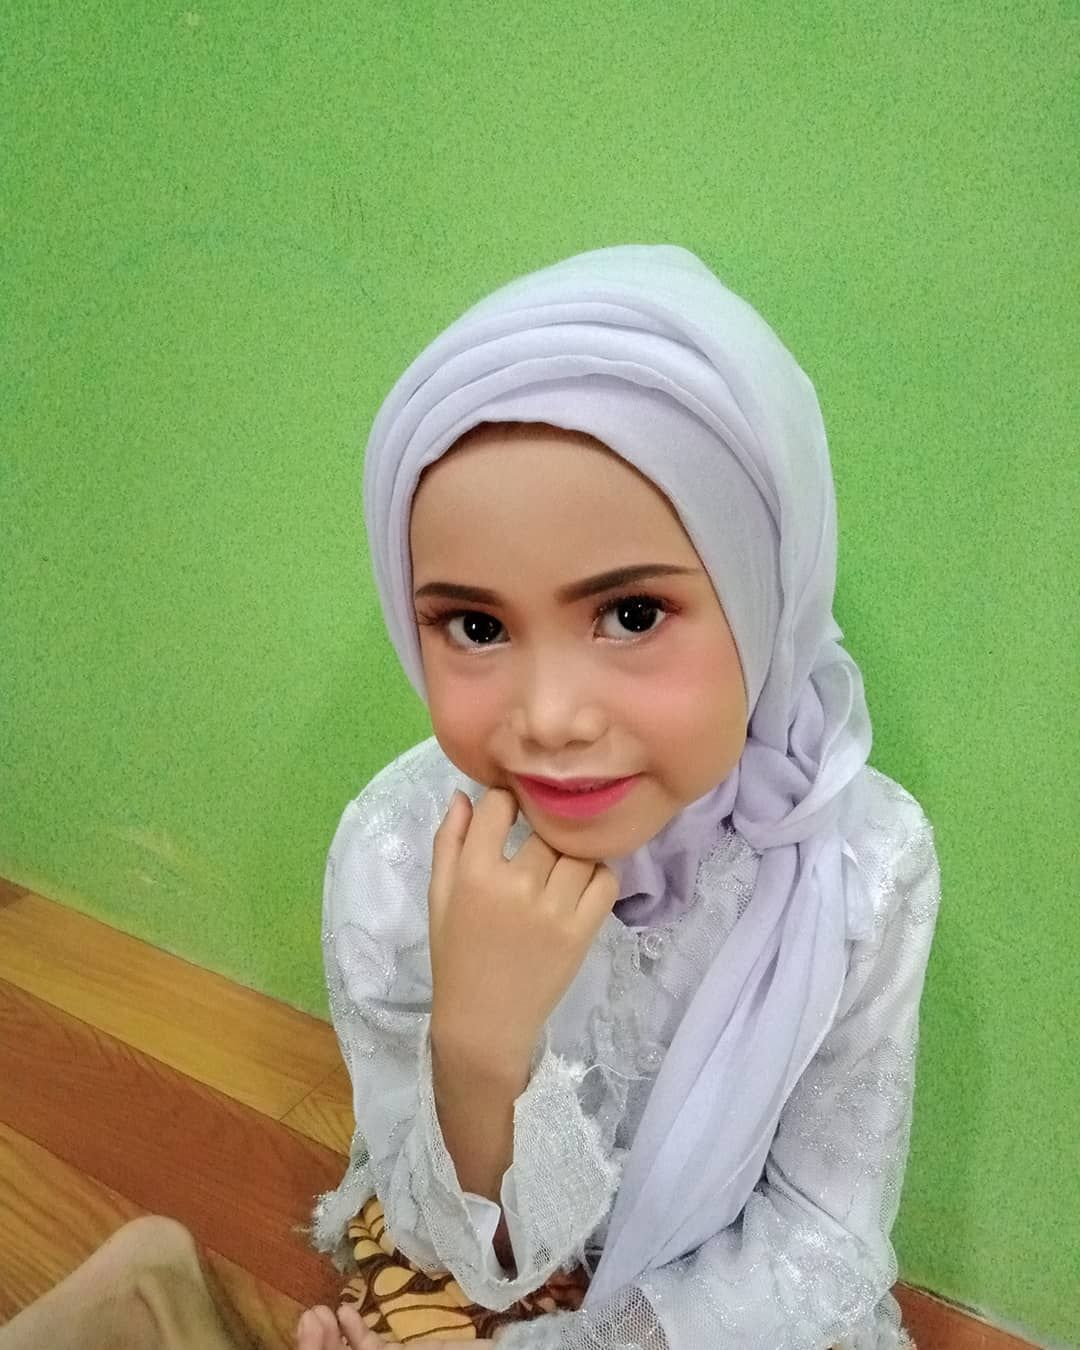 [New] The 10 Best Makeup (with Pictures) Anak nya ibu d